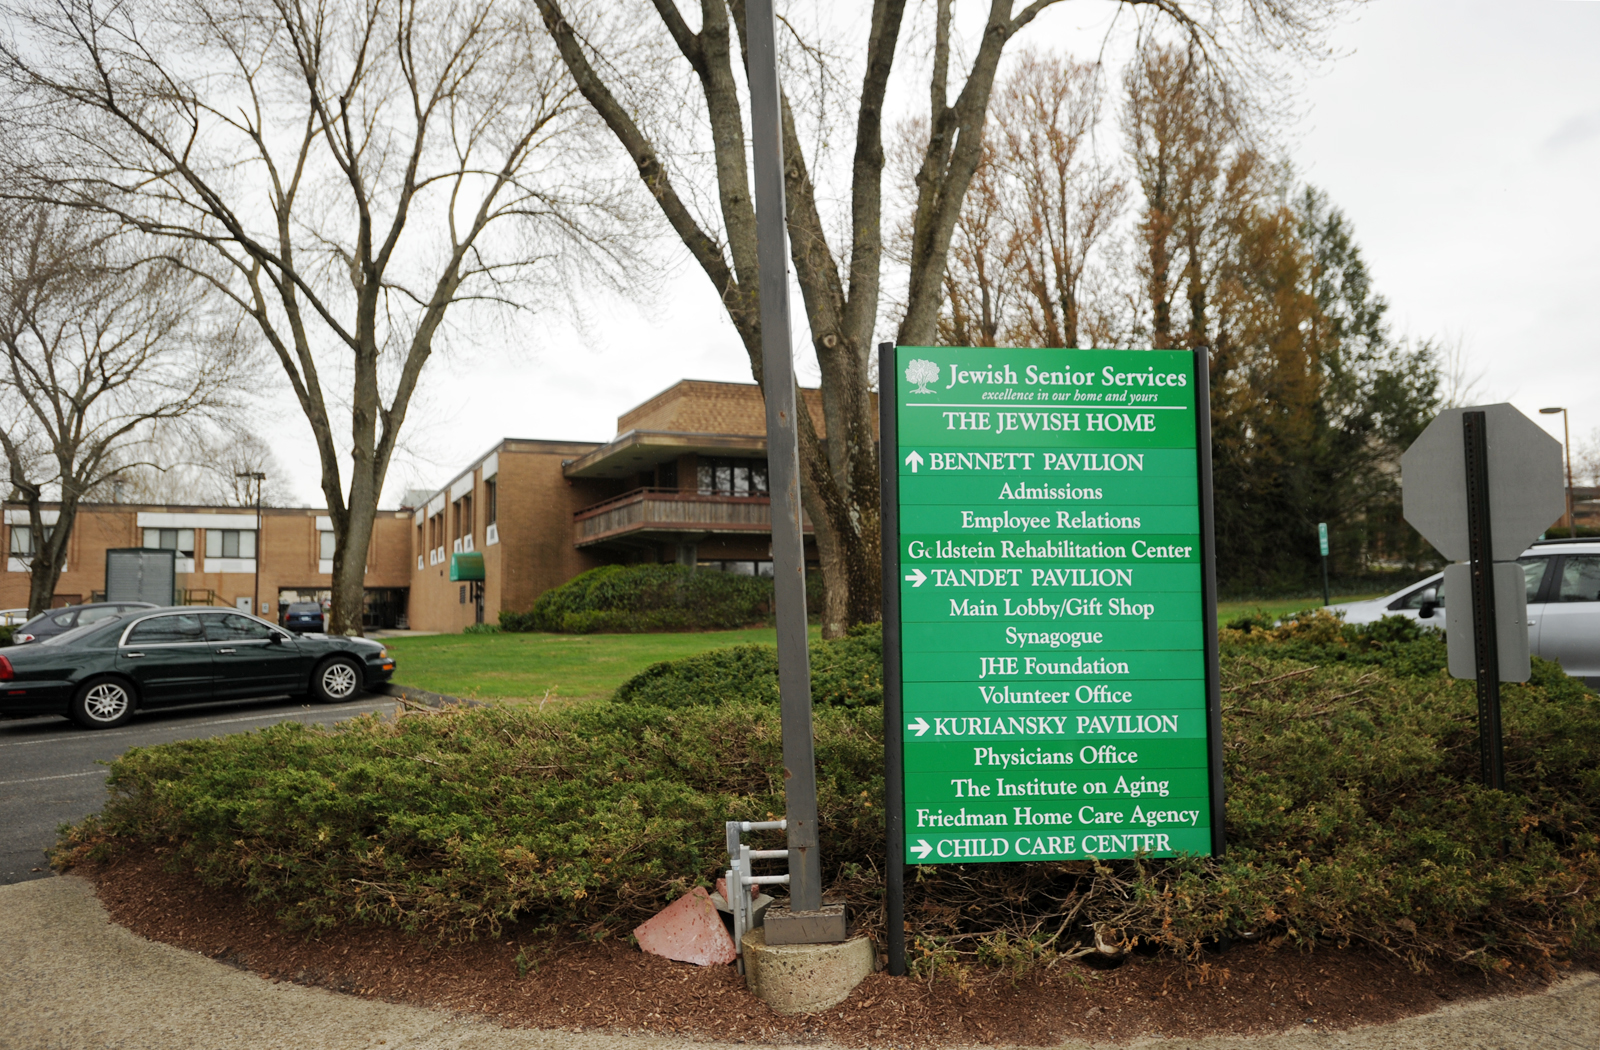 SHU Agrees To Buy Jewish Senior Services Facility In 2016 For 165 Million